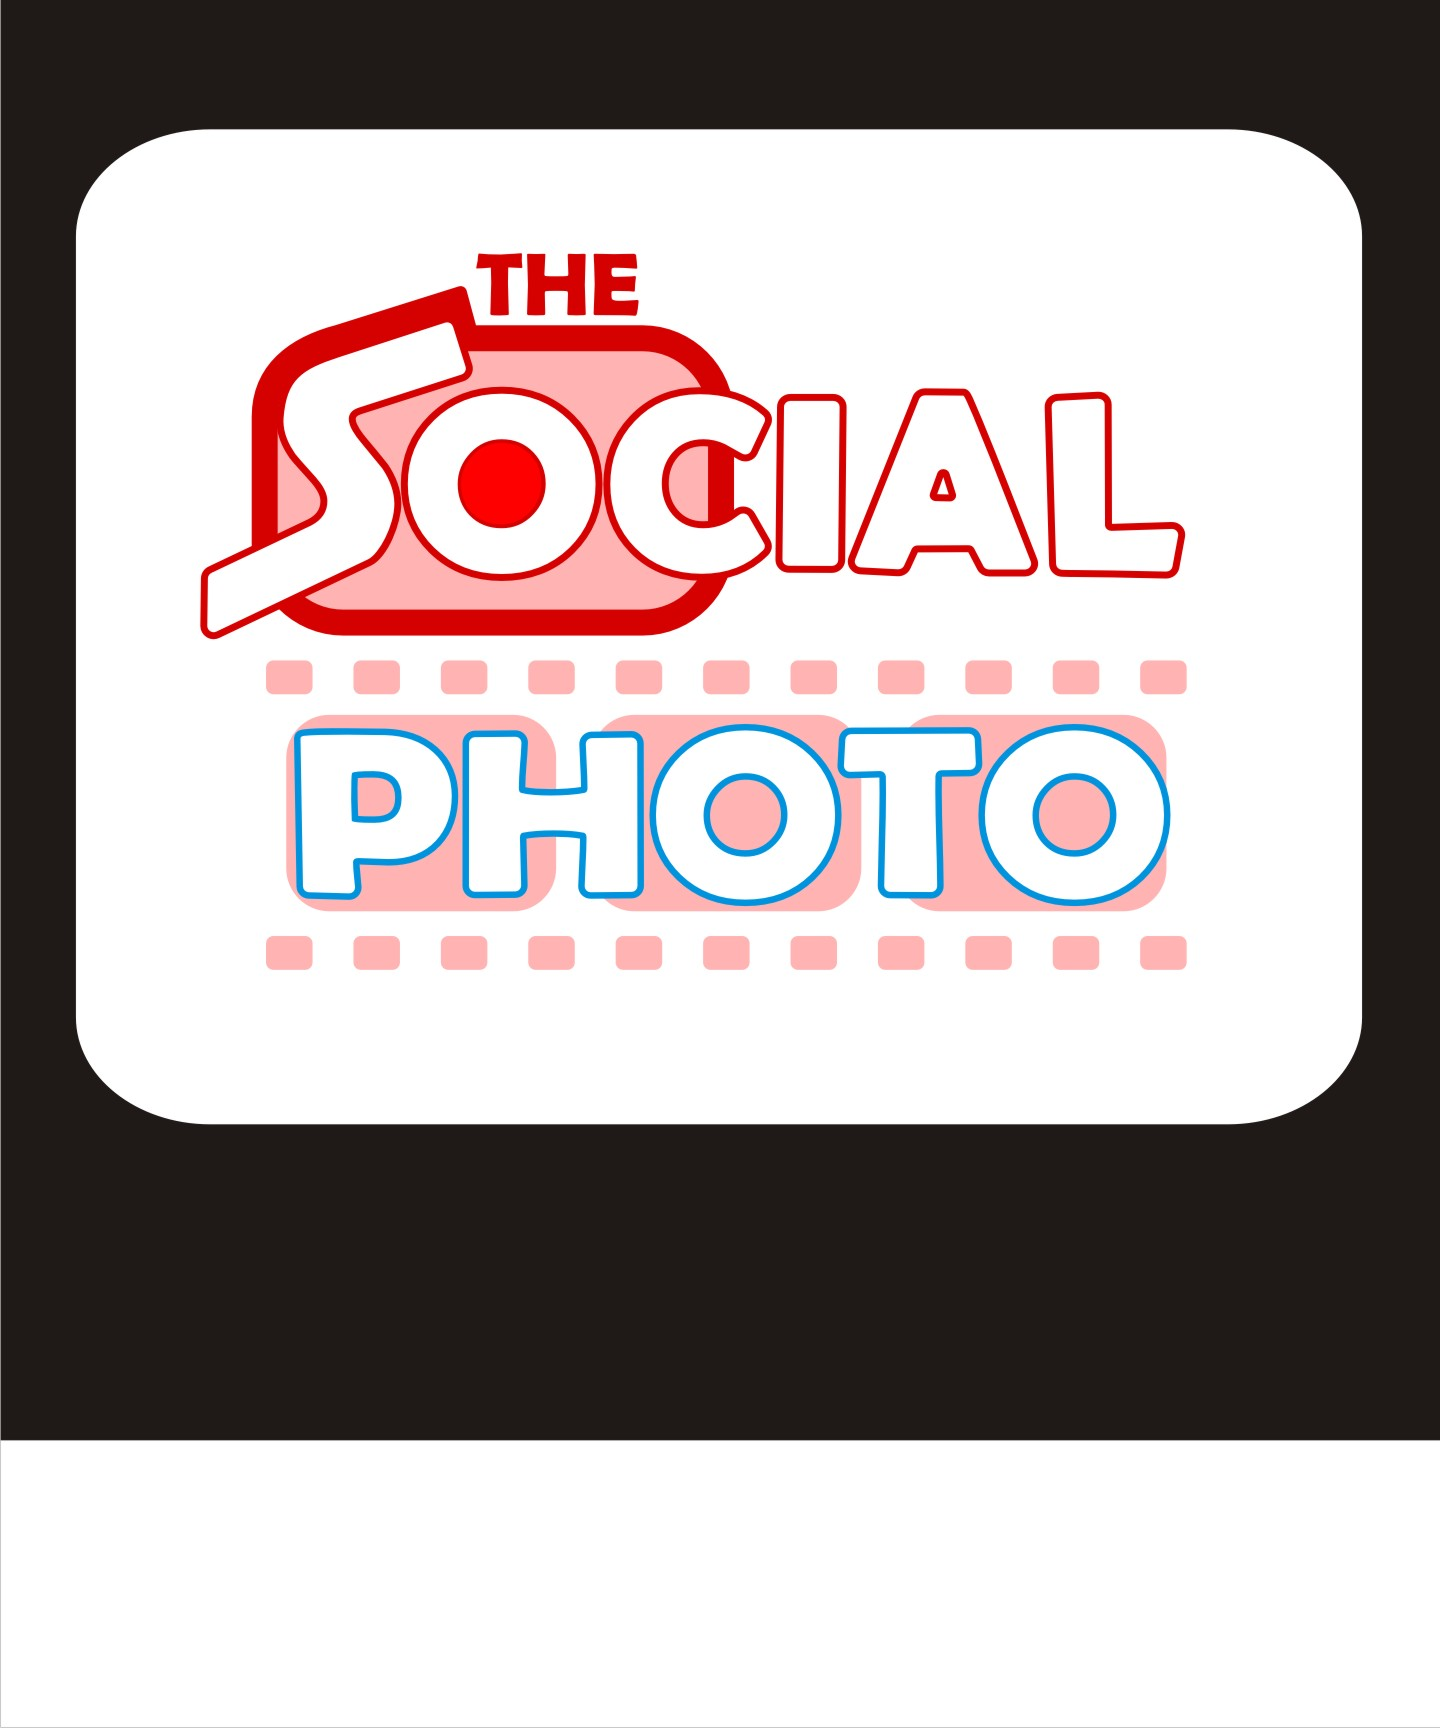 Logo Design by Private User - Entry No. 95 in the Logo Design Contest New Logo Design for the social photo.